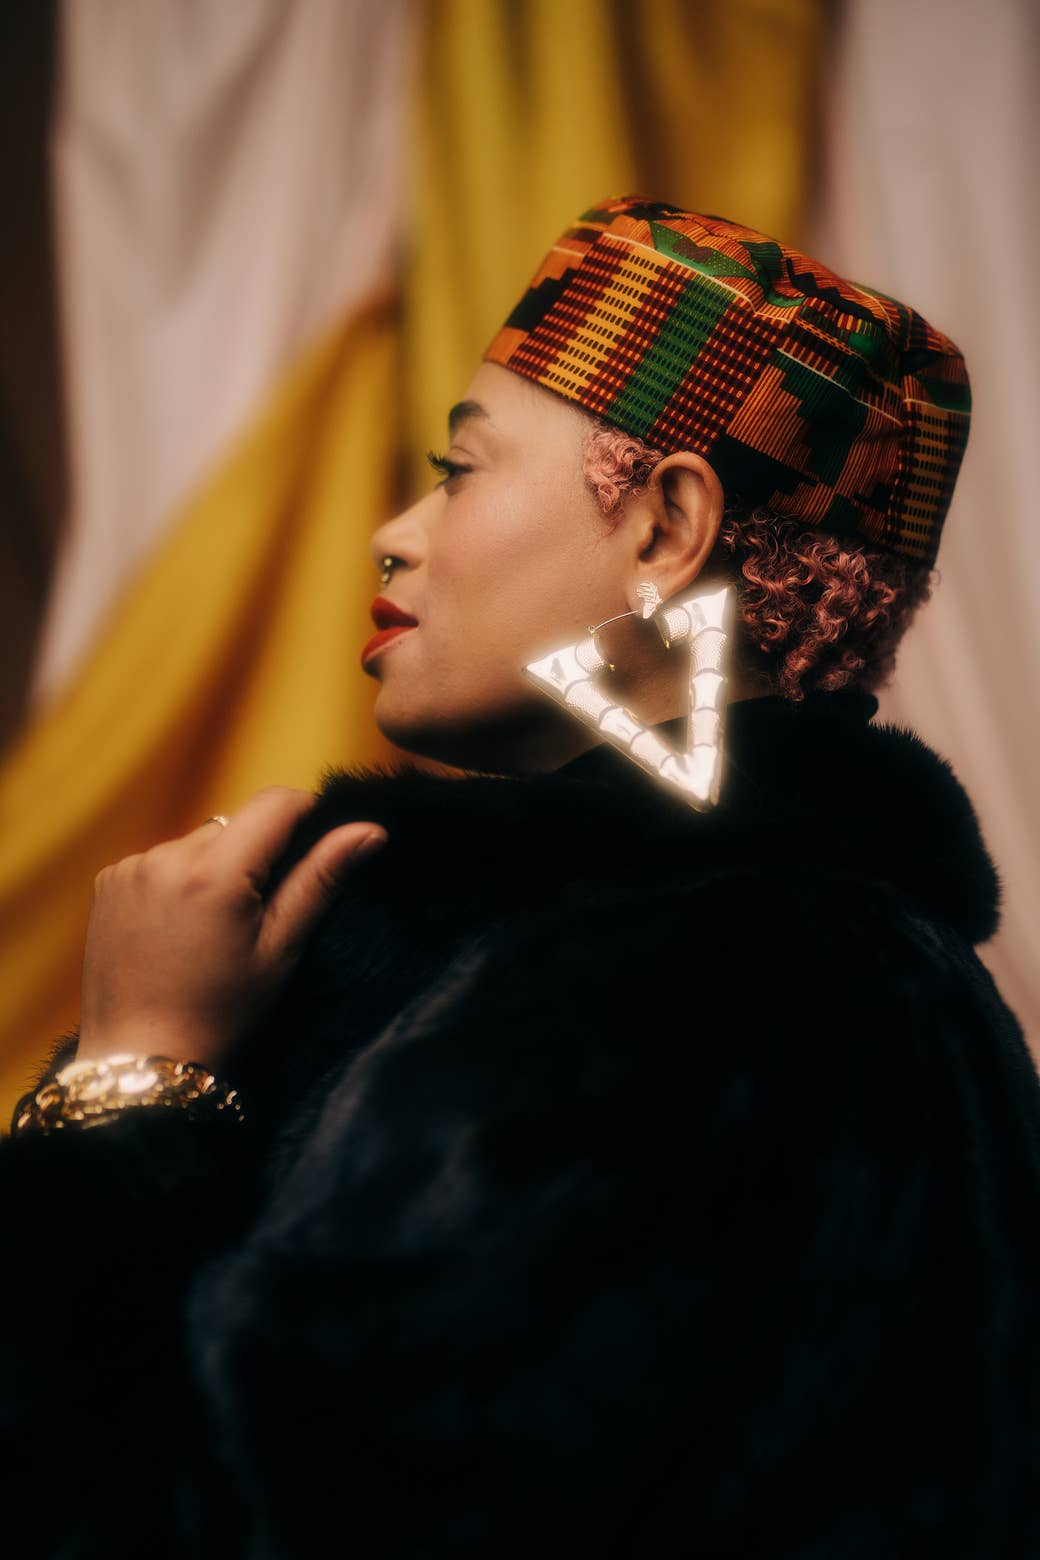 A woman wearing a hat in traditional African print, a black fur coat, and giant gold triangle earrings looks off in the distance.